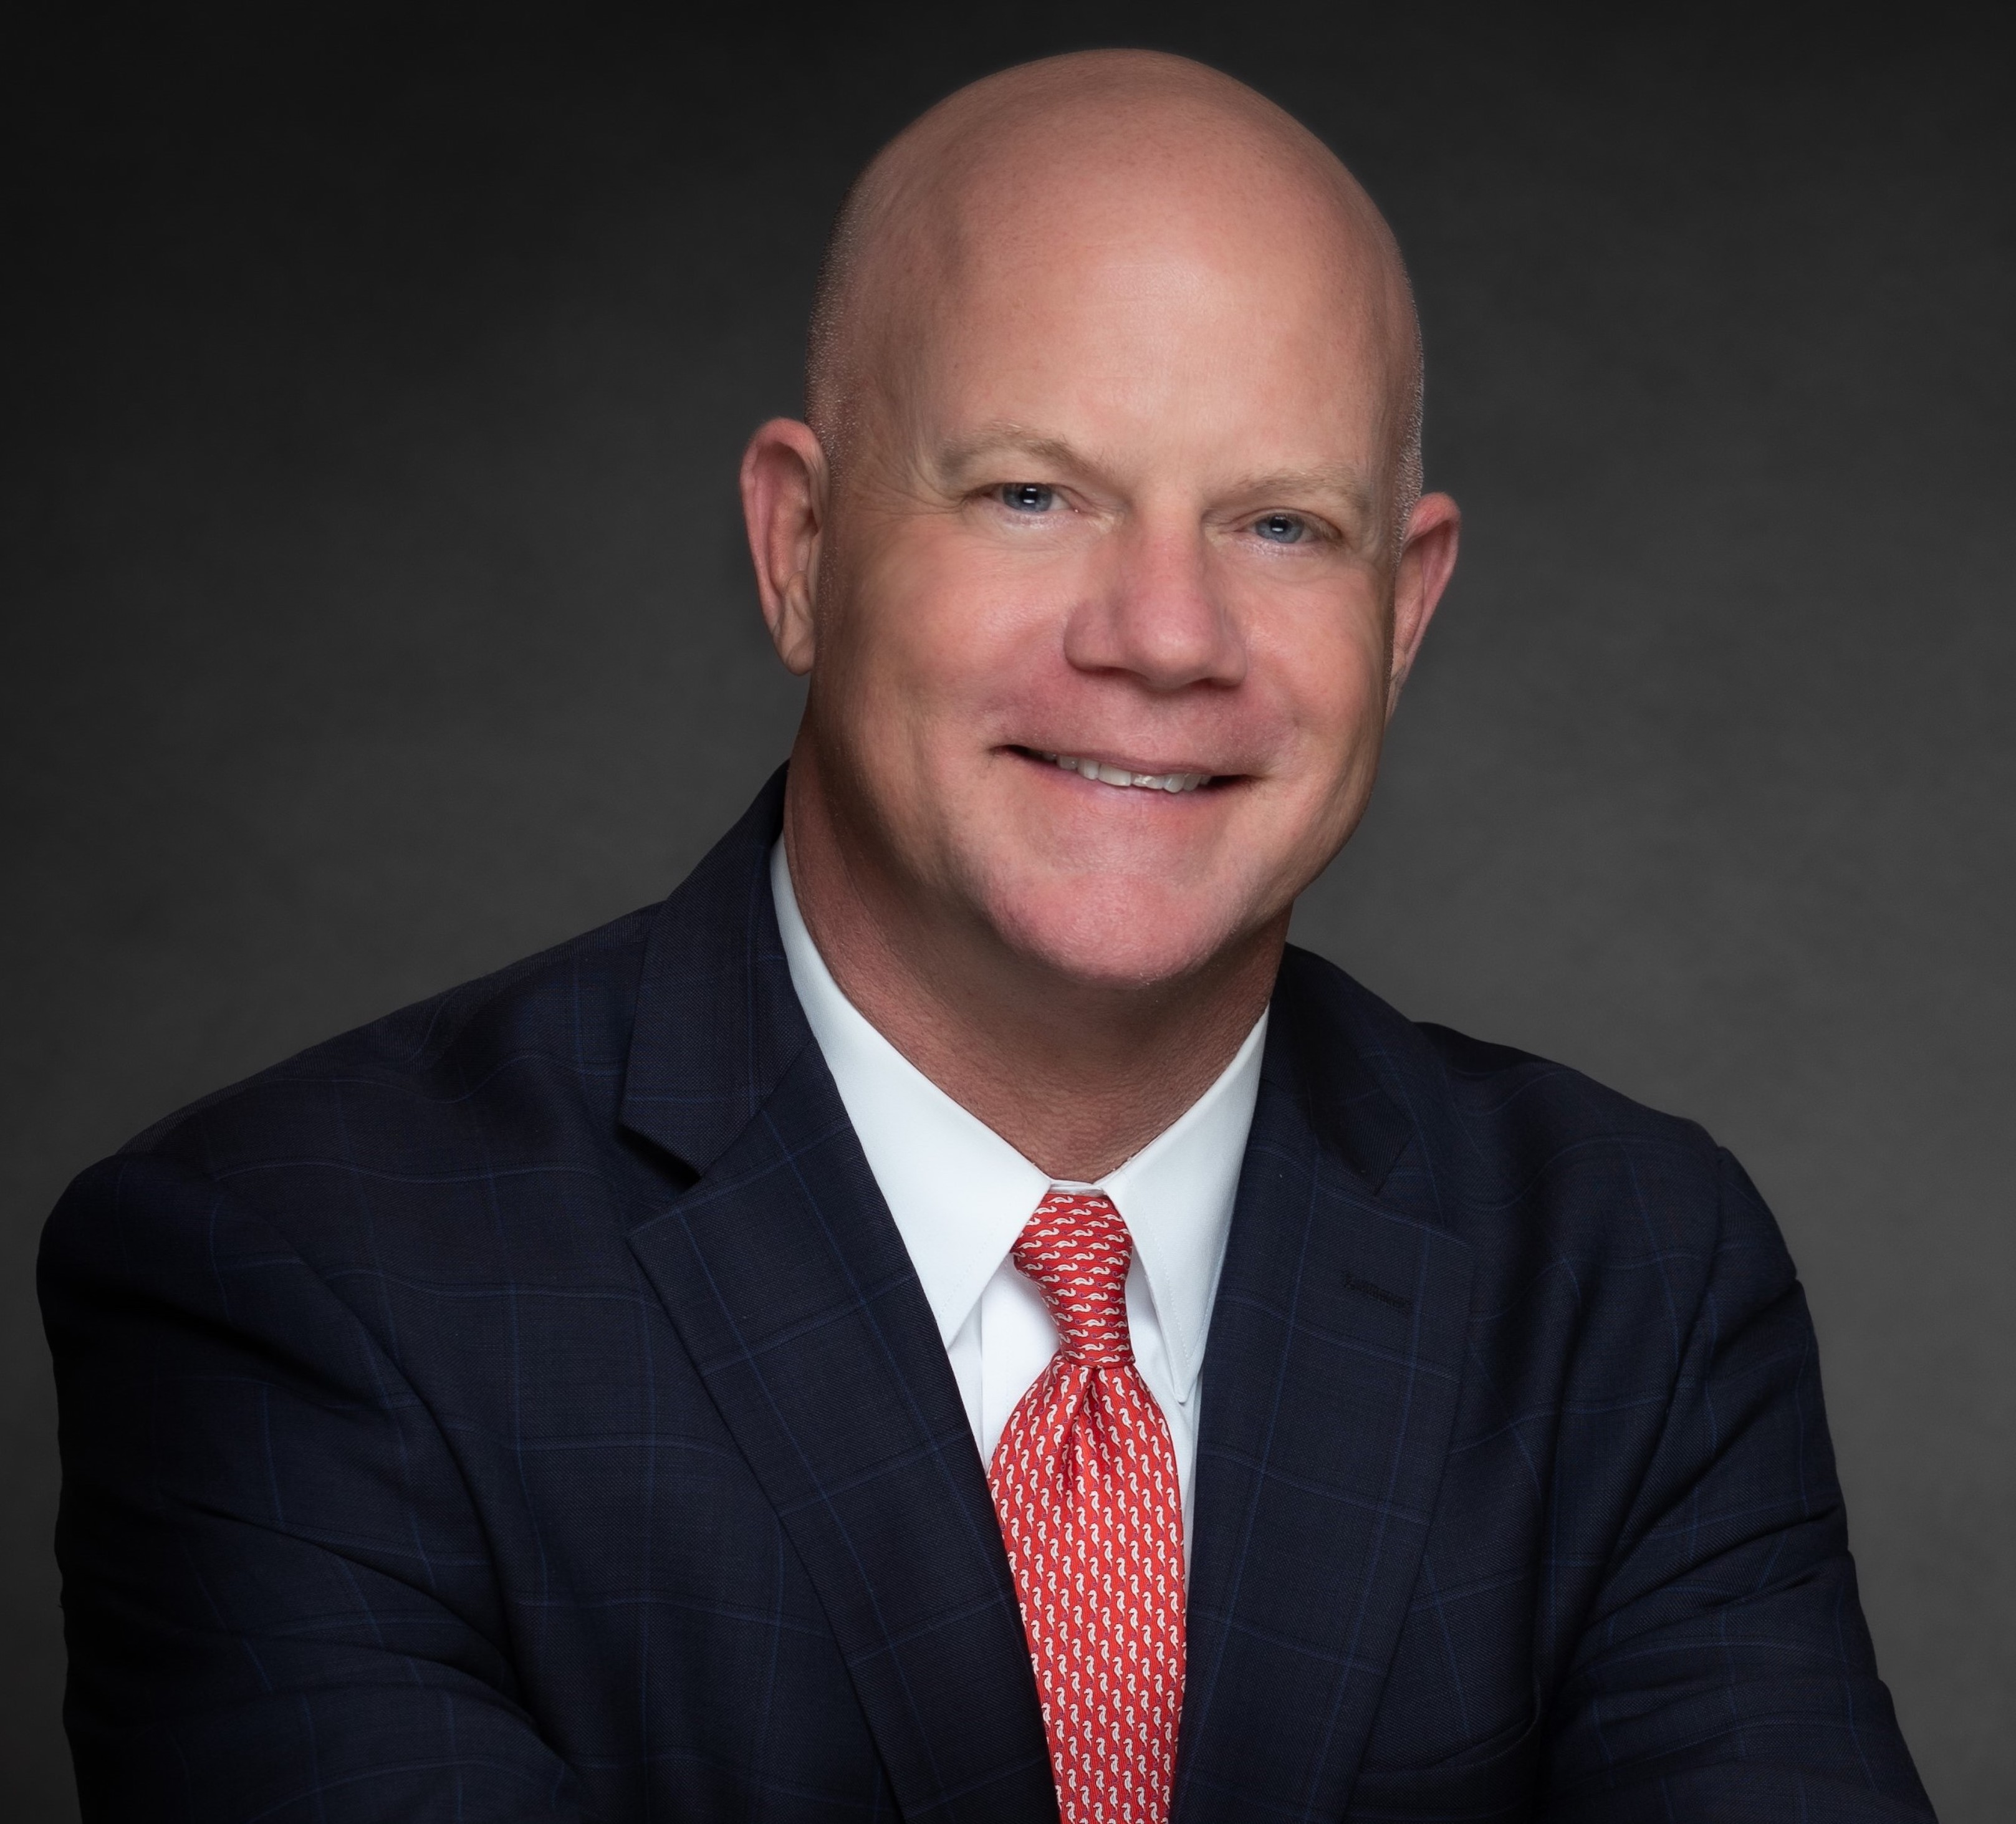 Steven T. Alch - President, Bank of America, Central Florida